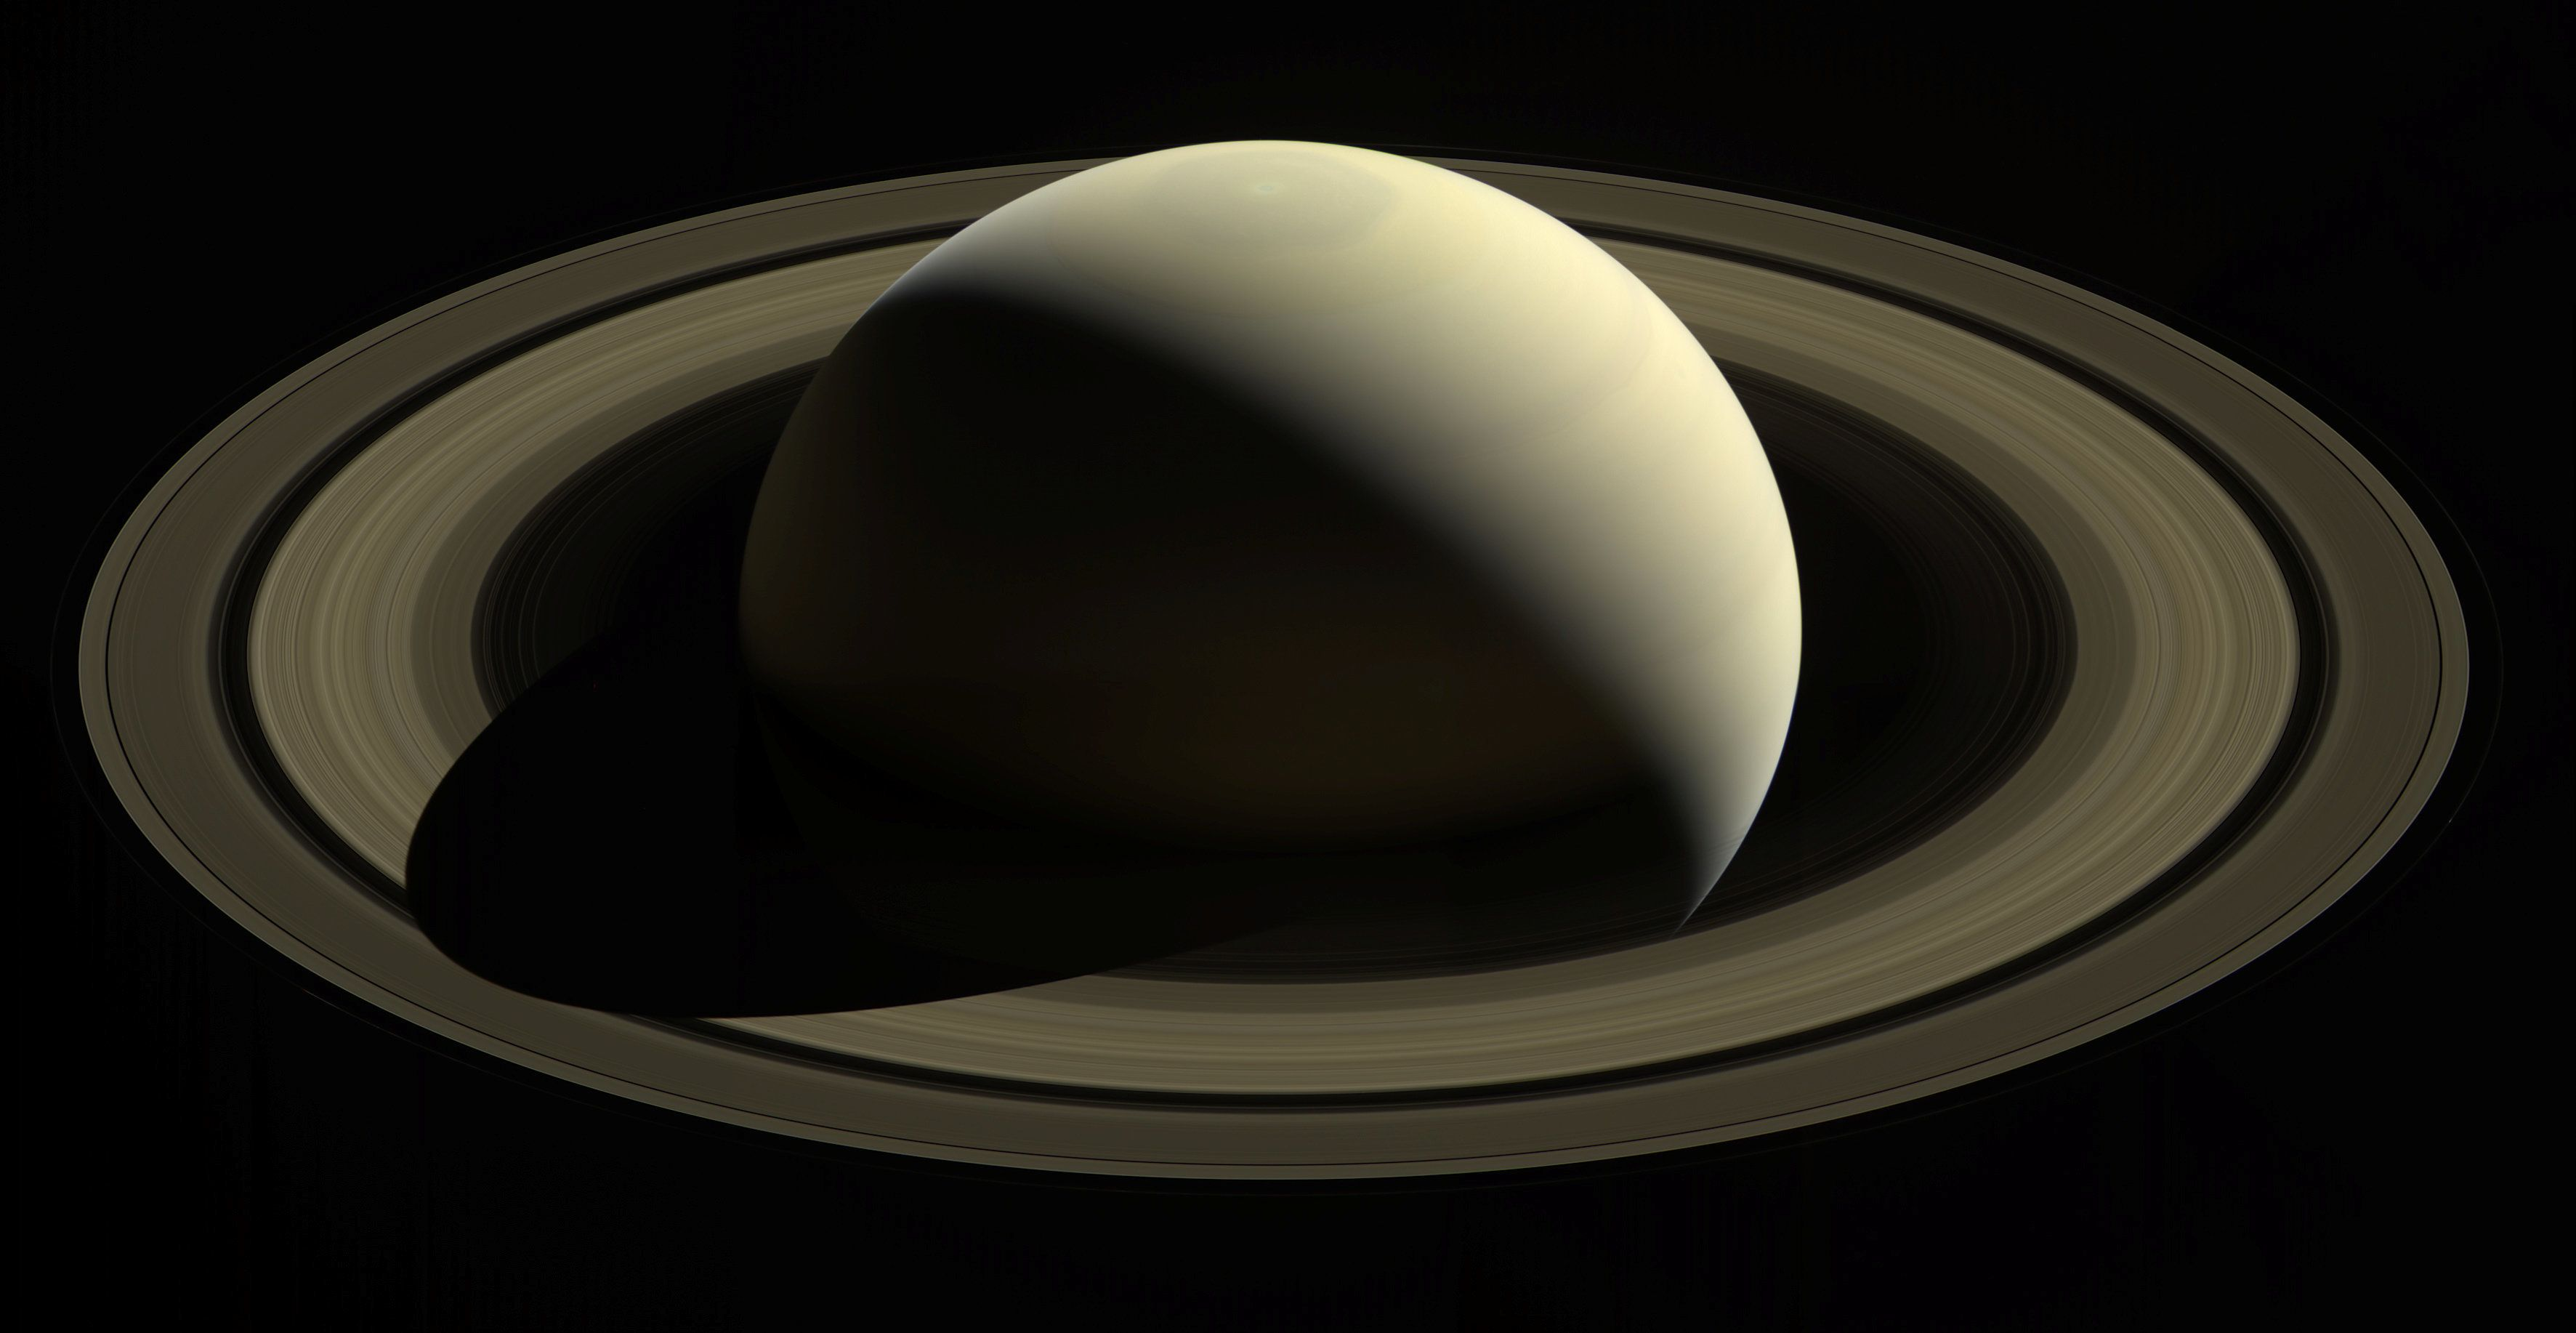 One of the last looks at Saturn and its main rings as captured by Cassini. When the spacecraft arrived at Saturn in 2004, the planet's northern hemisphere, seen here at top, was in darkness in winter. Now at journey's end, the entire north pole is bathed in sunlight of summer. Images taken October 28, 2016 and released September 11, 2017.  NASA/JPL-Caltech/Space Science Institute/Handout via REUTERS  ATTENTION EDITORS - THIS IMAGE WAS PROVIDED BY A THIRD PARTY